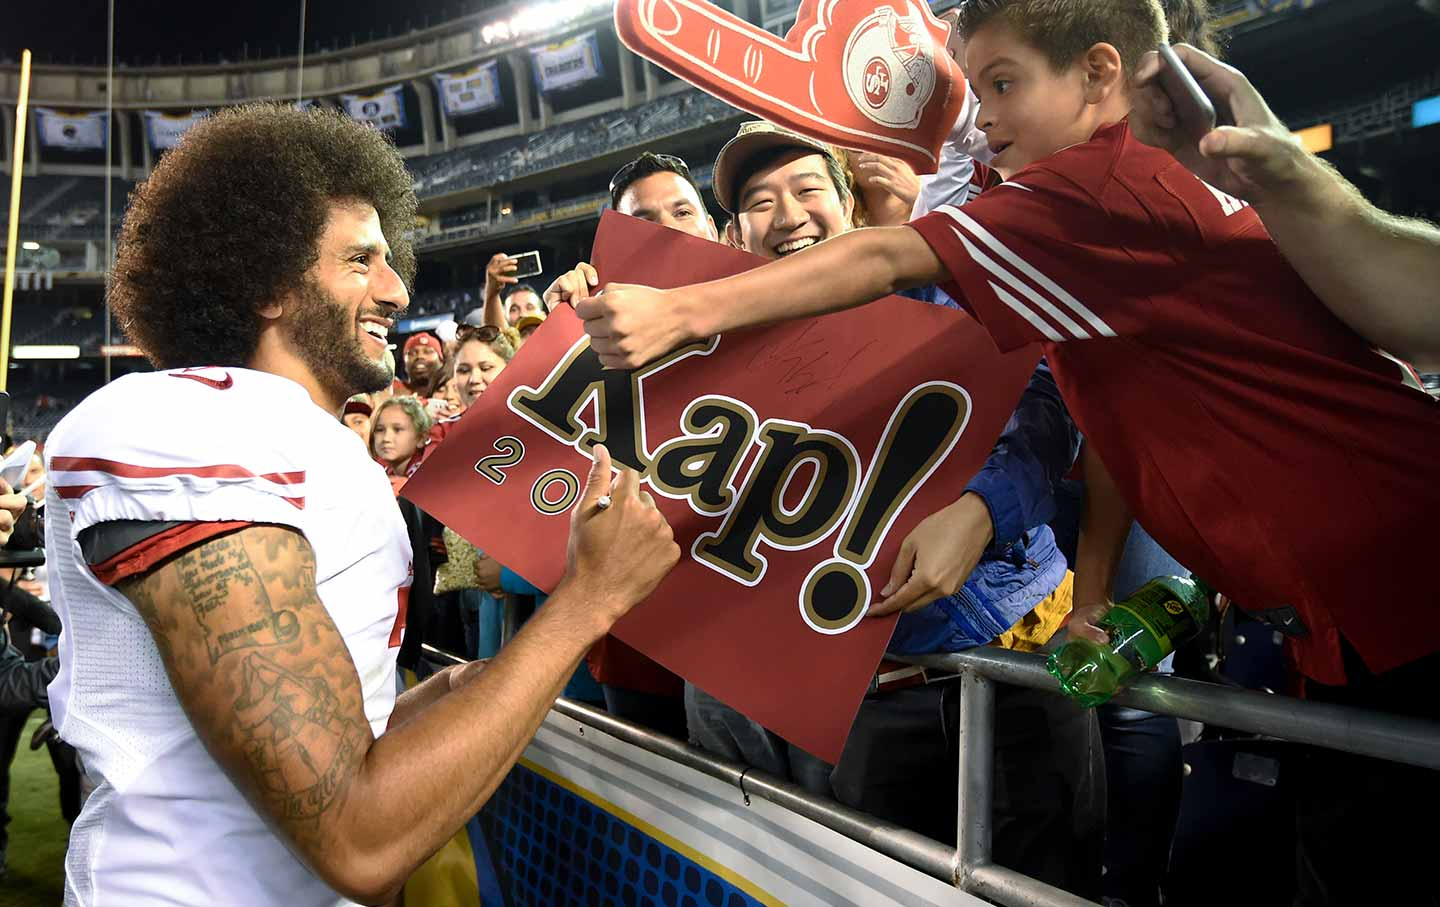 Colin Kaepernick greets fans after a preseason game (AP Photo / Denis Poroy).